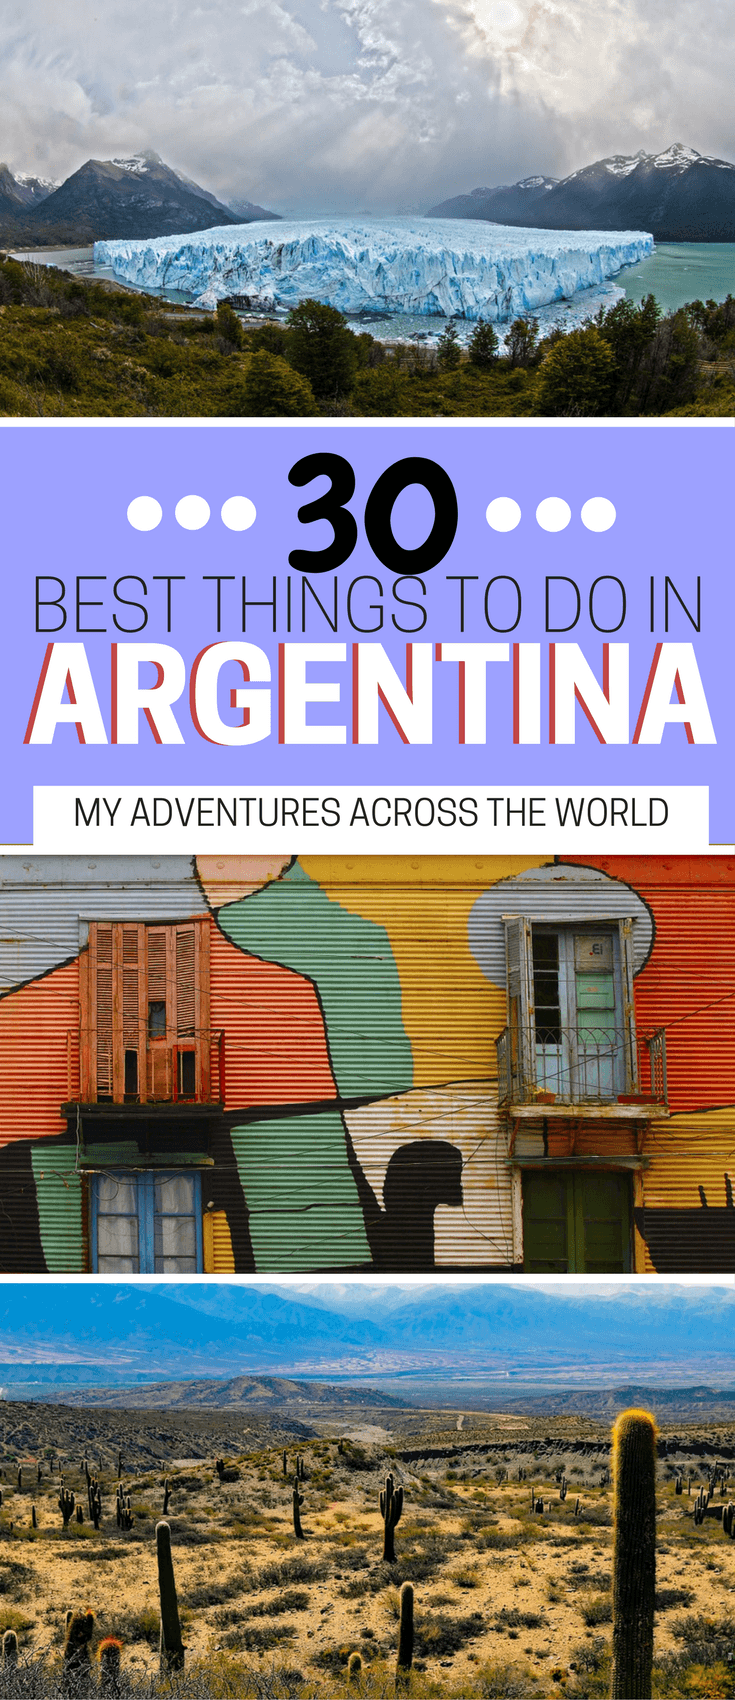 Discover the best things to do in Argentina - via @clautavani